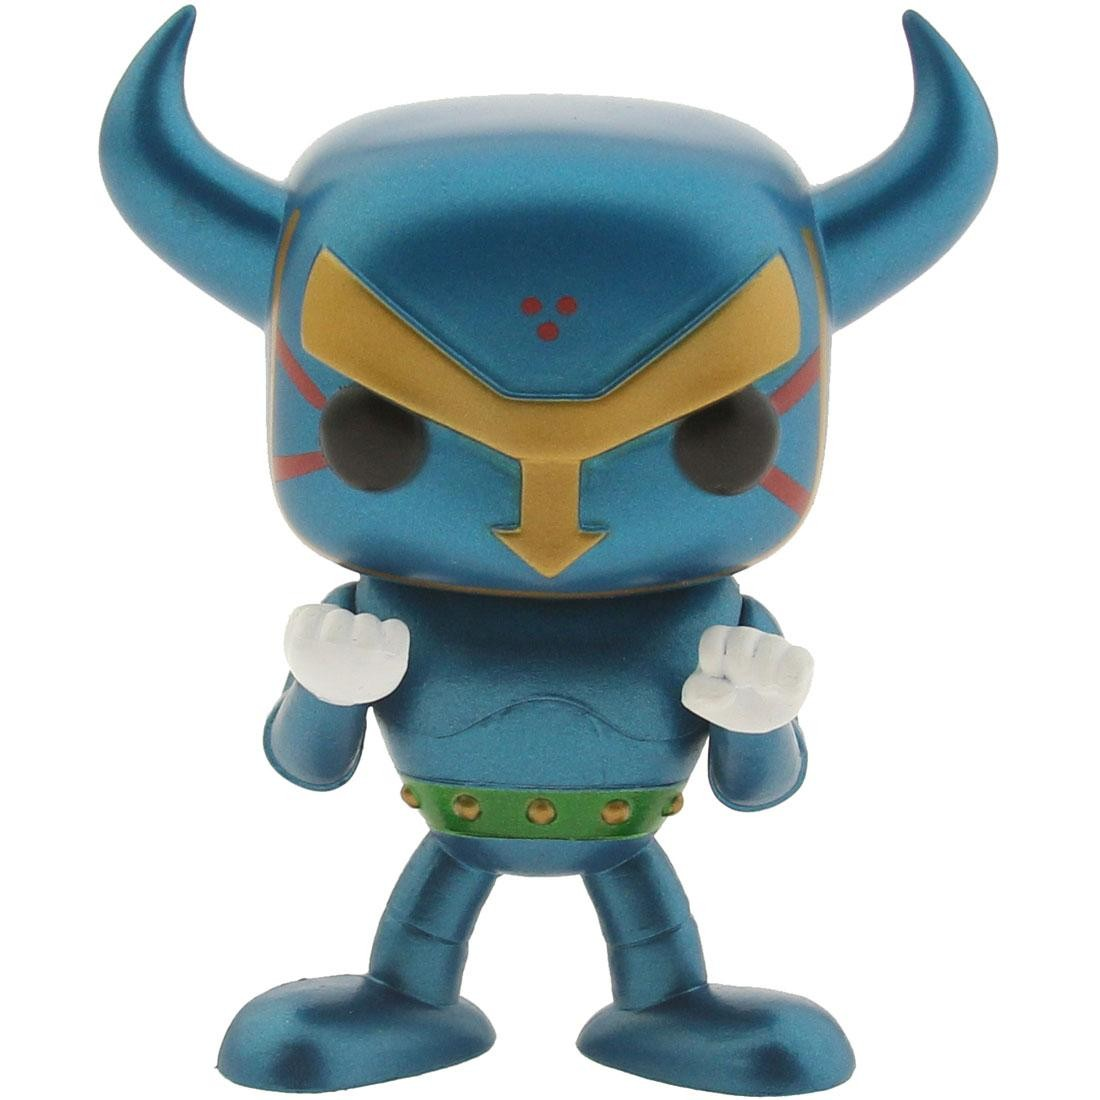 Funko Pop! Asia Pluto (Metallic)